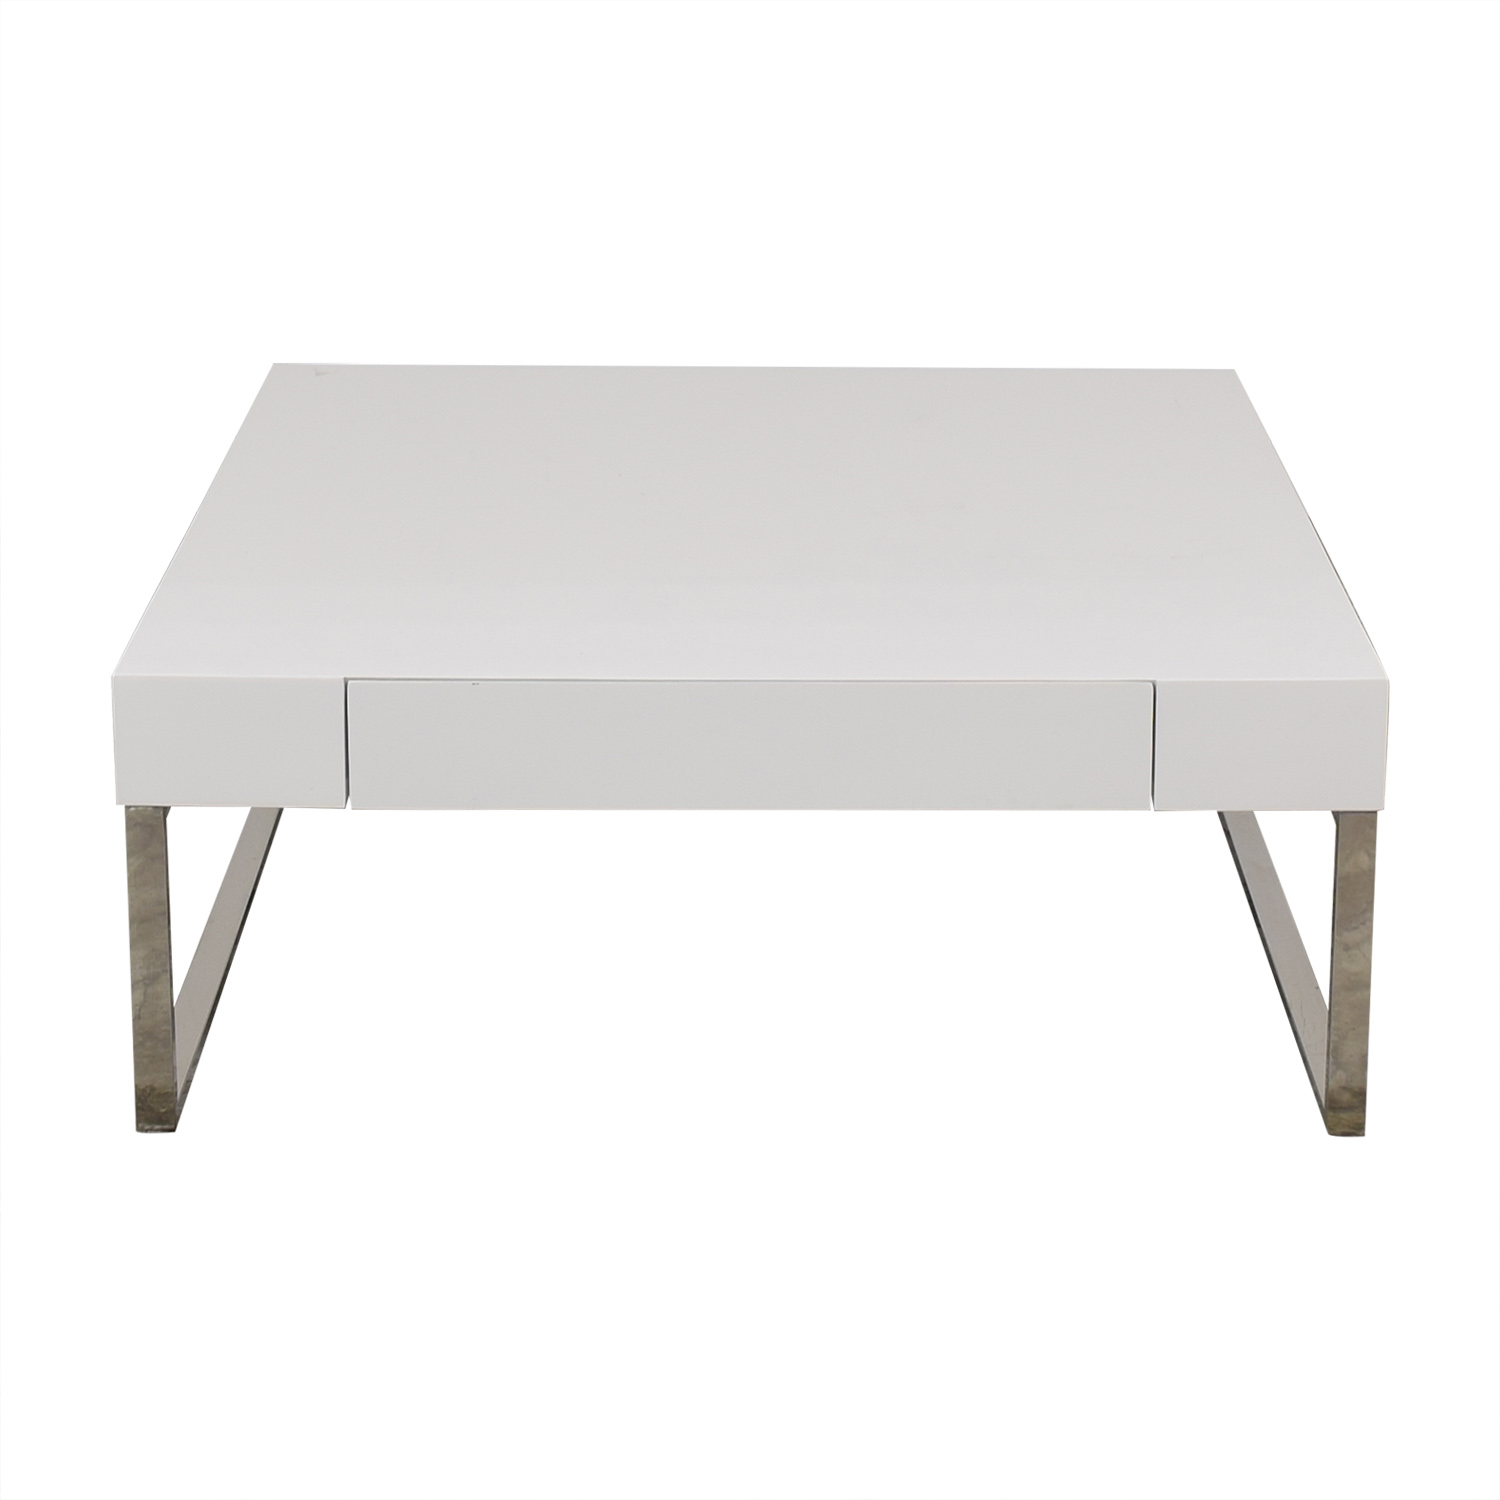 Modani Modani Gavino Coffee Table Tables